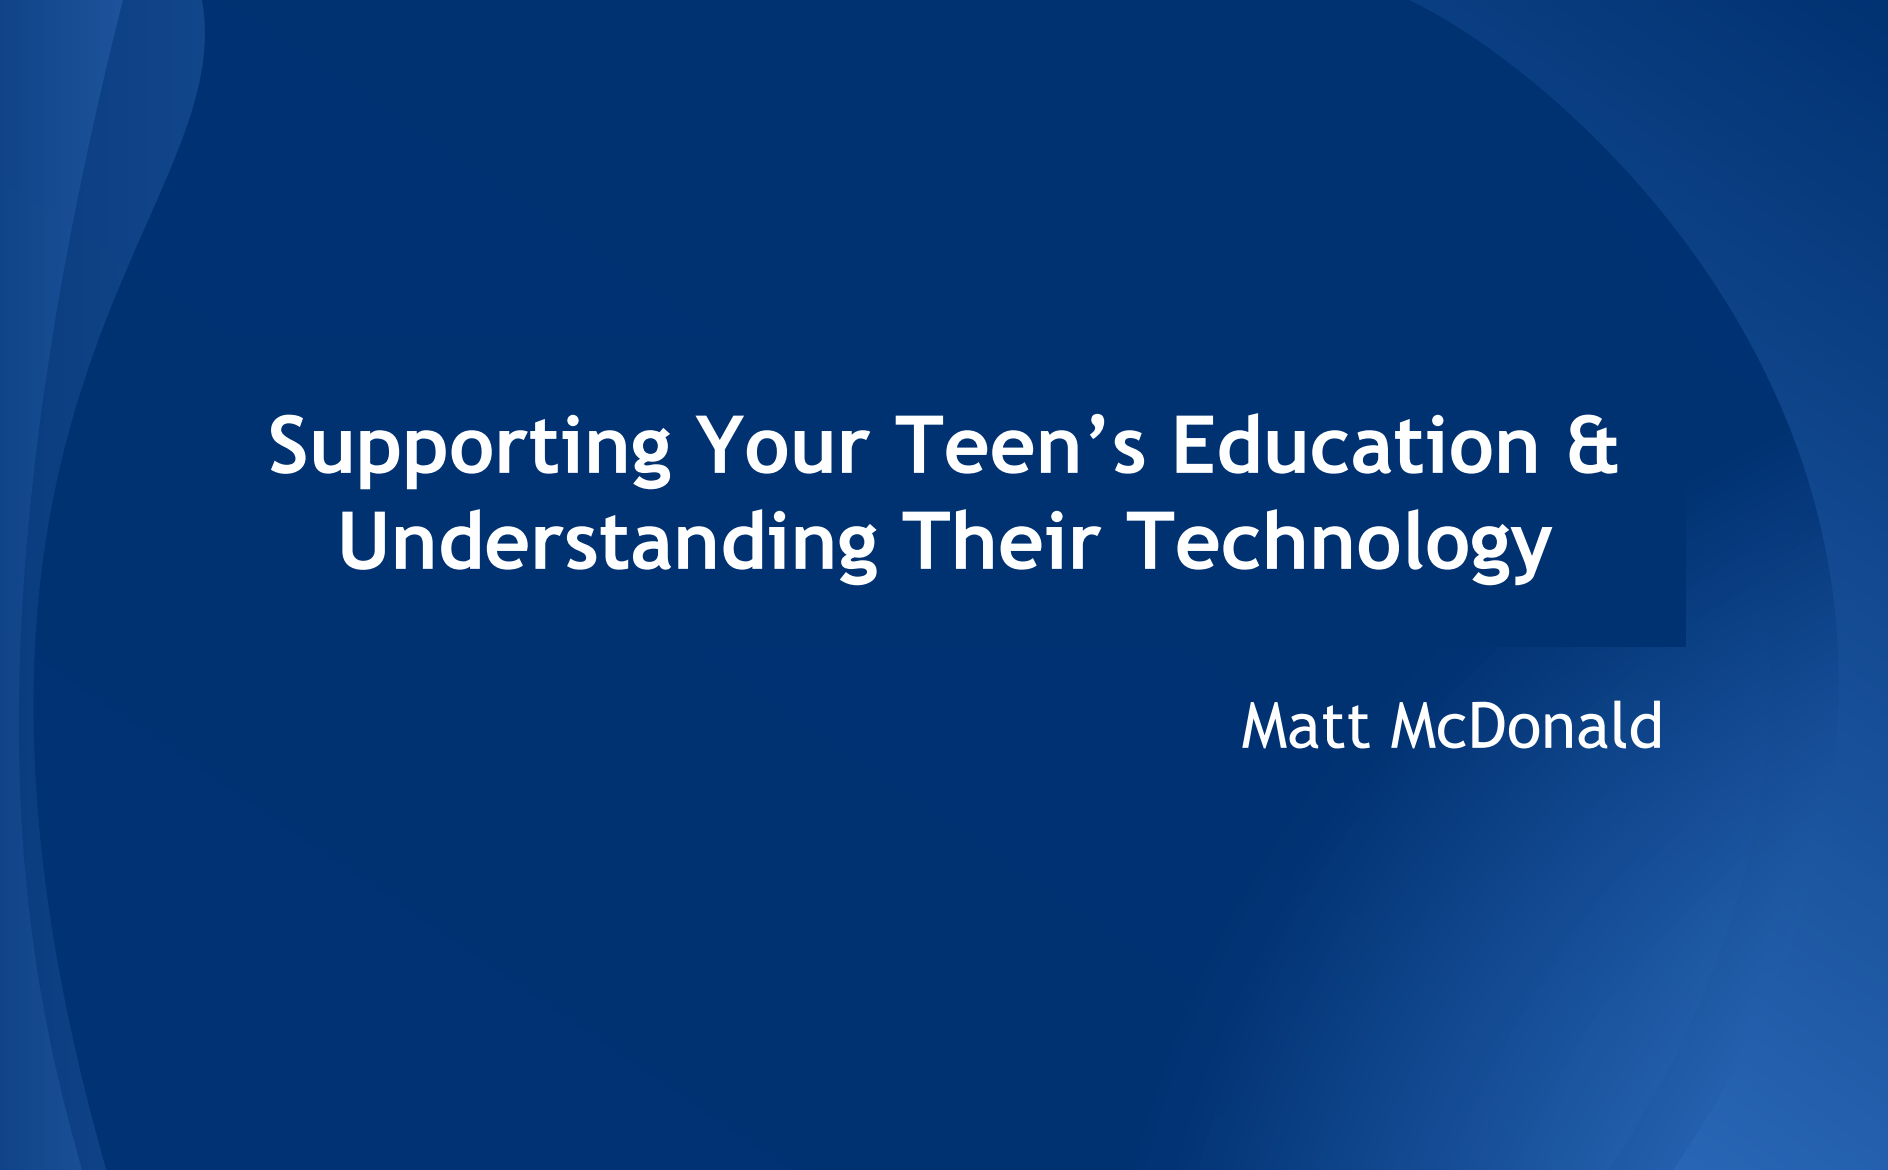 Supporting Your Teen's Education & Understanding Their Technology